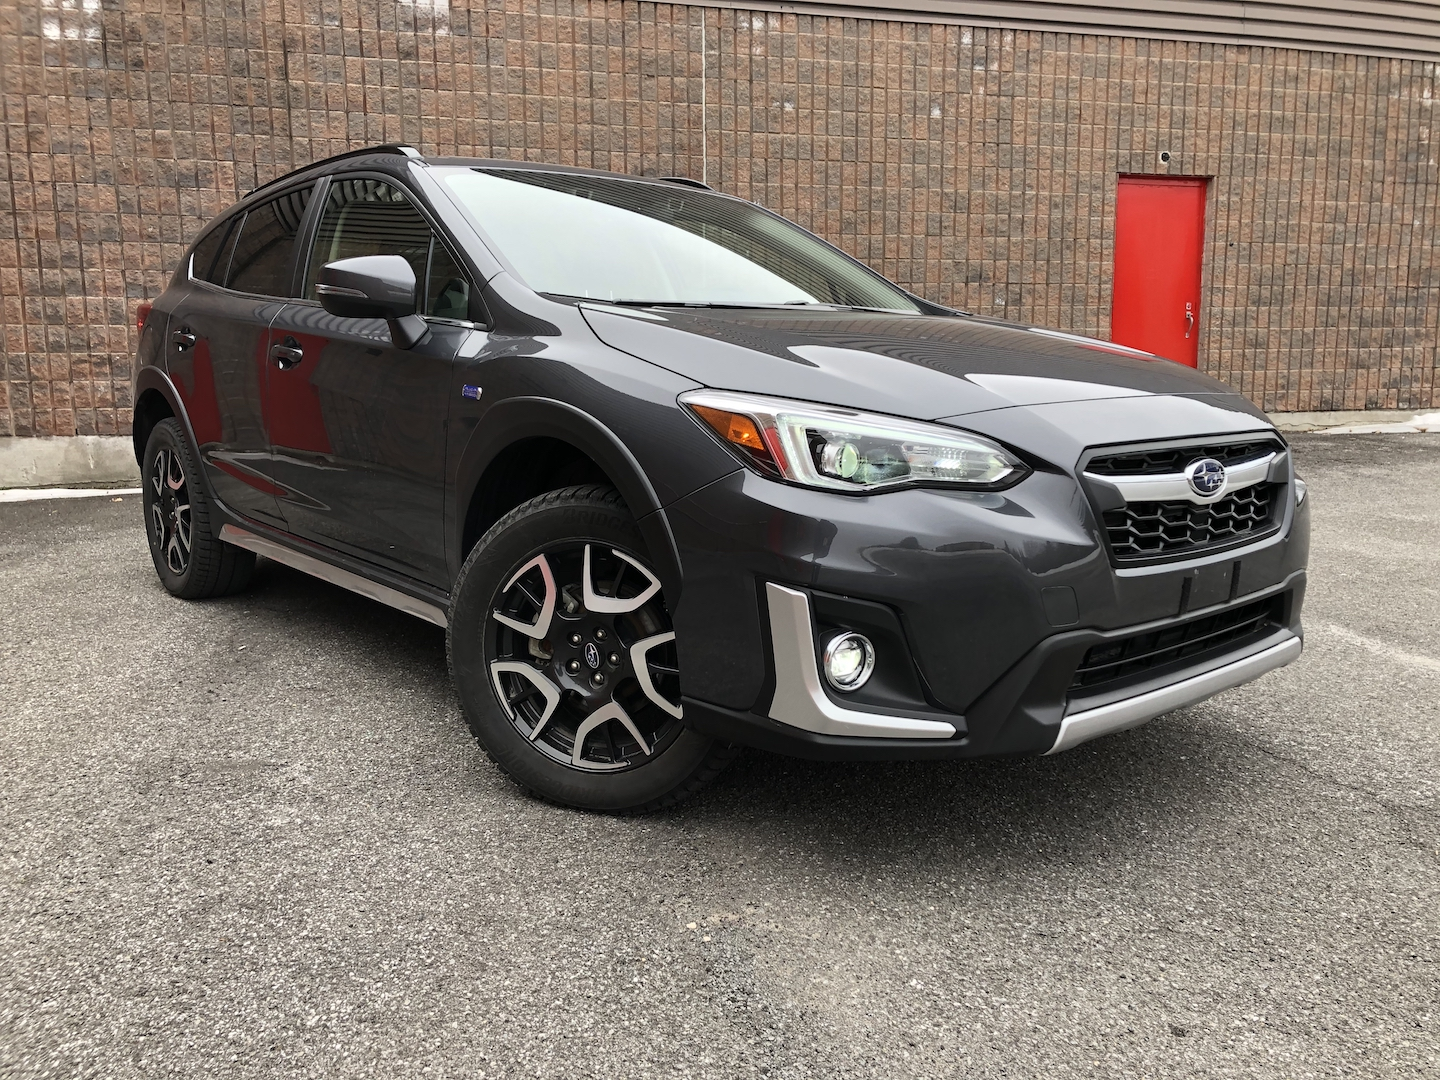 2020 Subaru Crosstrek Limited Phev Limited In Availability And Ability Motor Illustrated